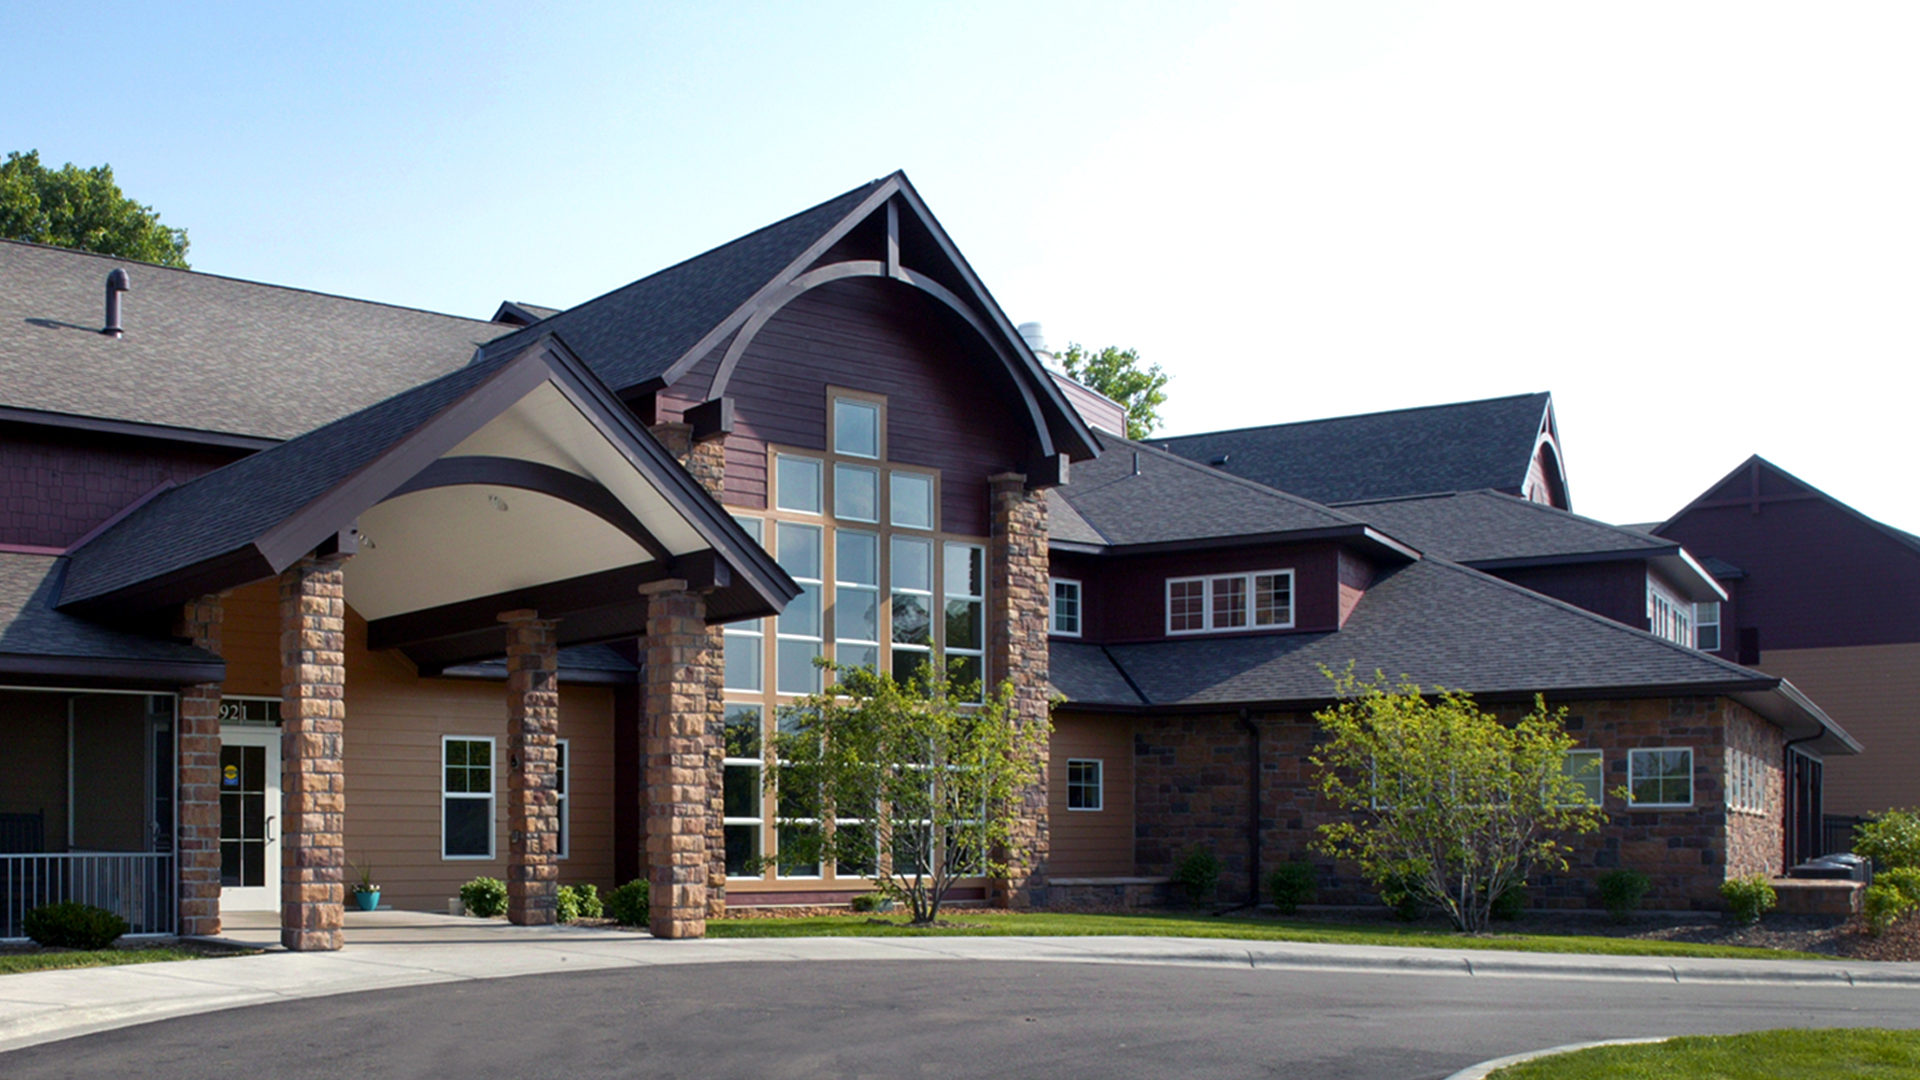 Valley Ridge Senior Residential Housing Burnsville MN Close Up on Exterior Front Entrance